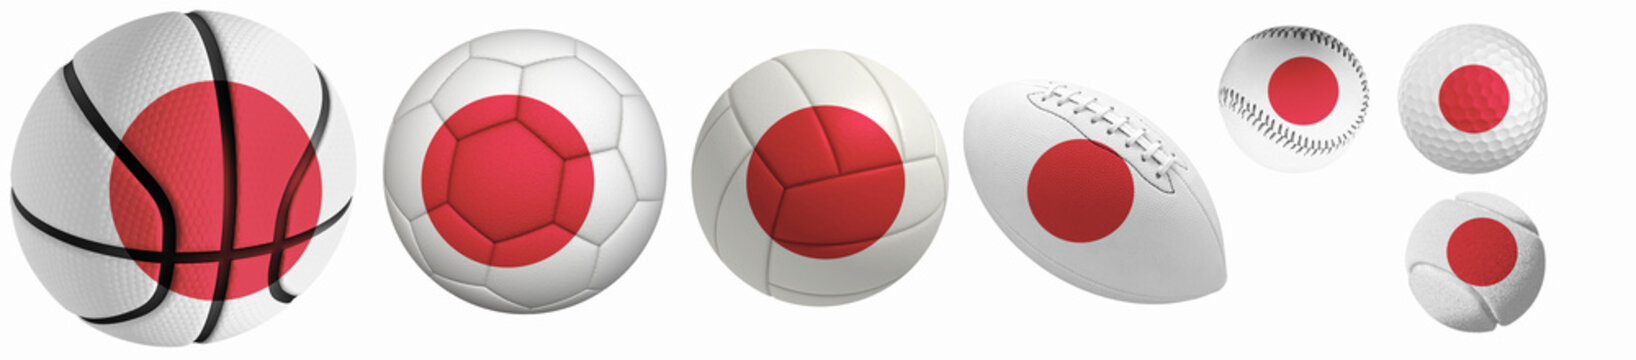 Japan flag superimposed on balls: Golf, basketball, volleyball, soccer, tennis, rugby, baseball isolated on a white background. 3d rendering